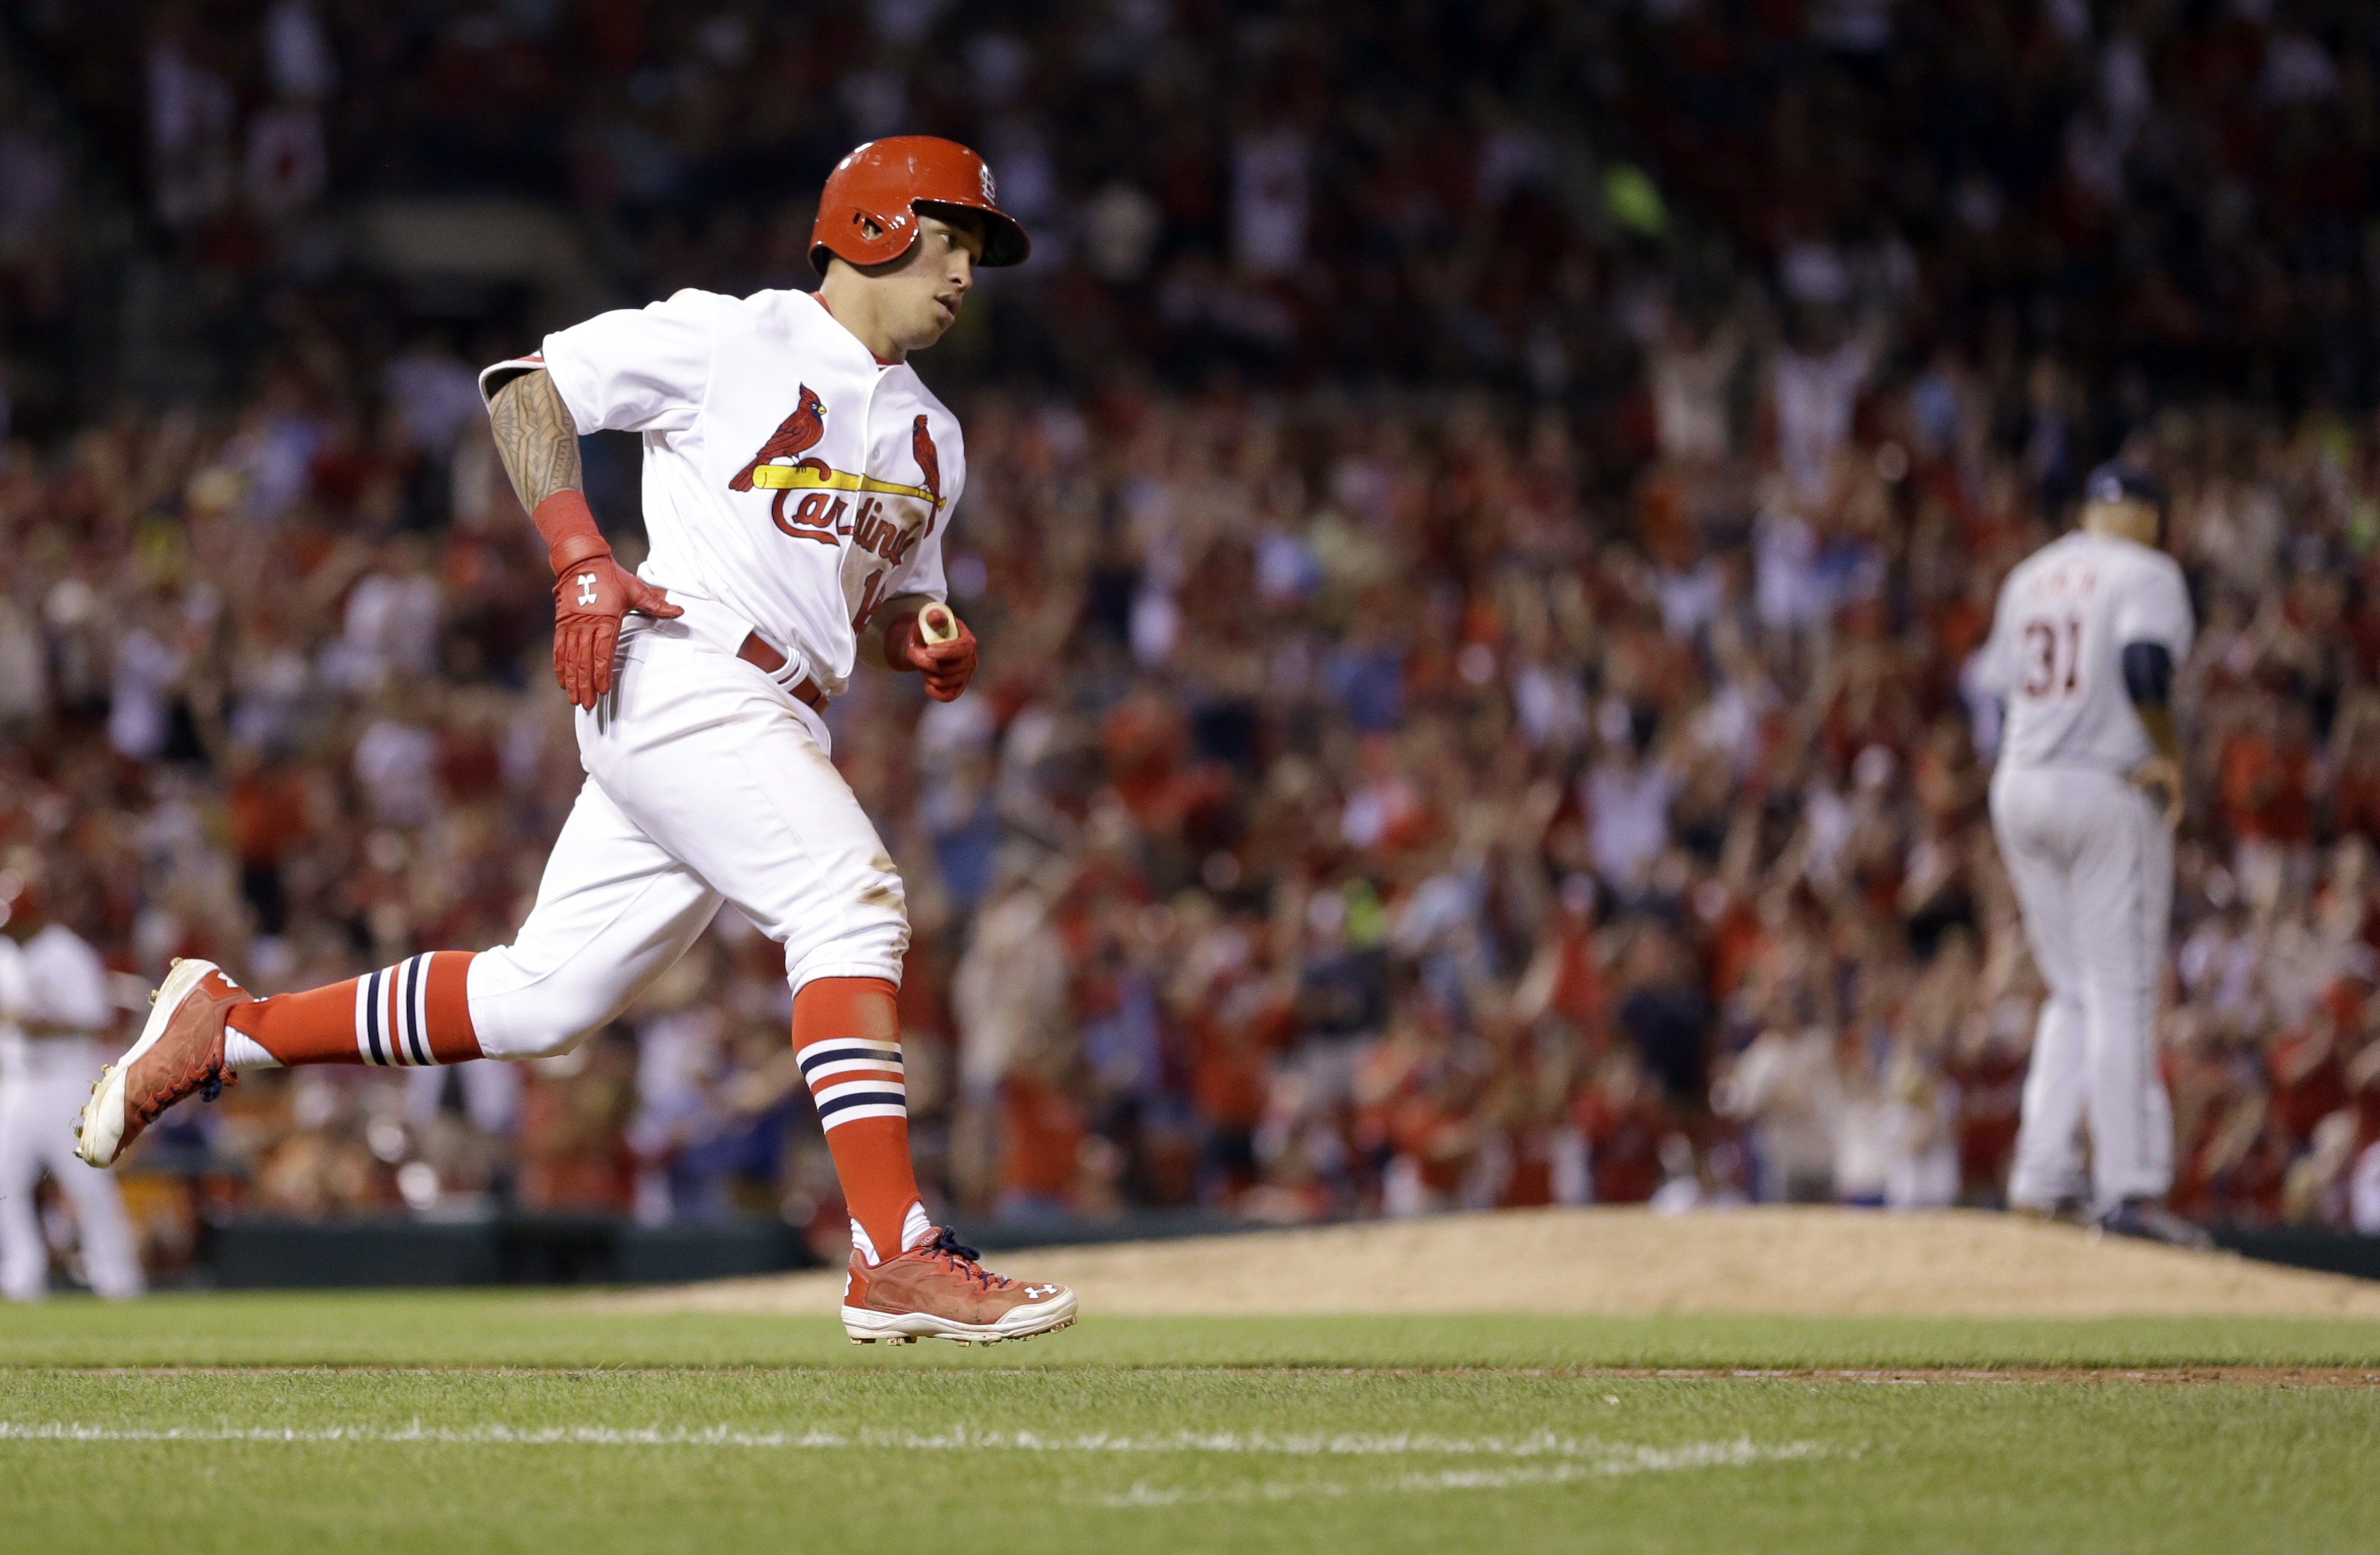 St. Louis Cardinals' Kolten Wong, left, rounds the bases after hitting a solo home run off Detroit Tigers starting pitcher Alfredo Simon, right, during the sixth inning of a baseball game Sunday, May 17, 2015, in St. Louis. (AP Photo/Jeff Roberson)